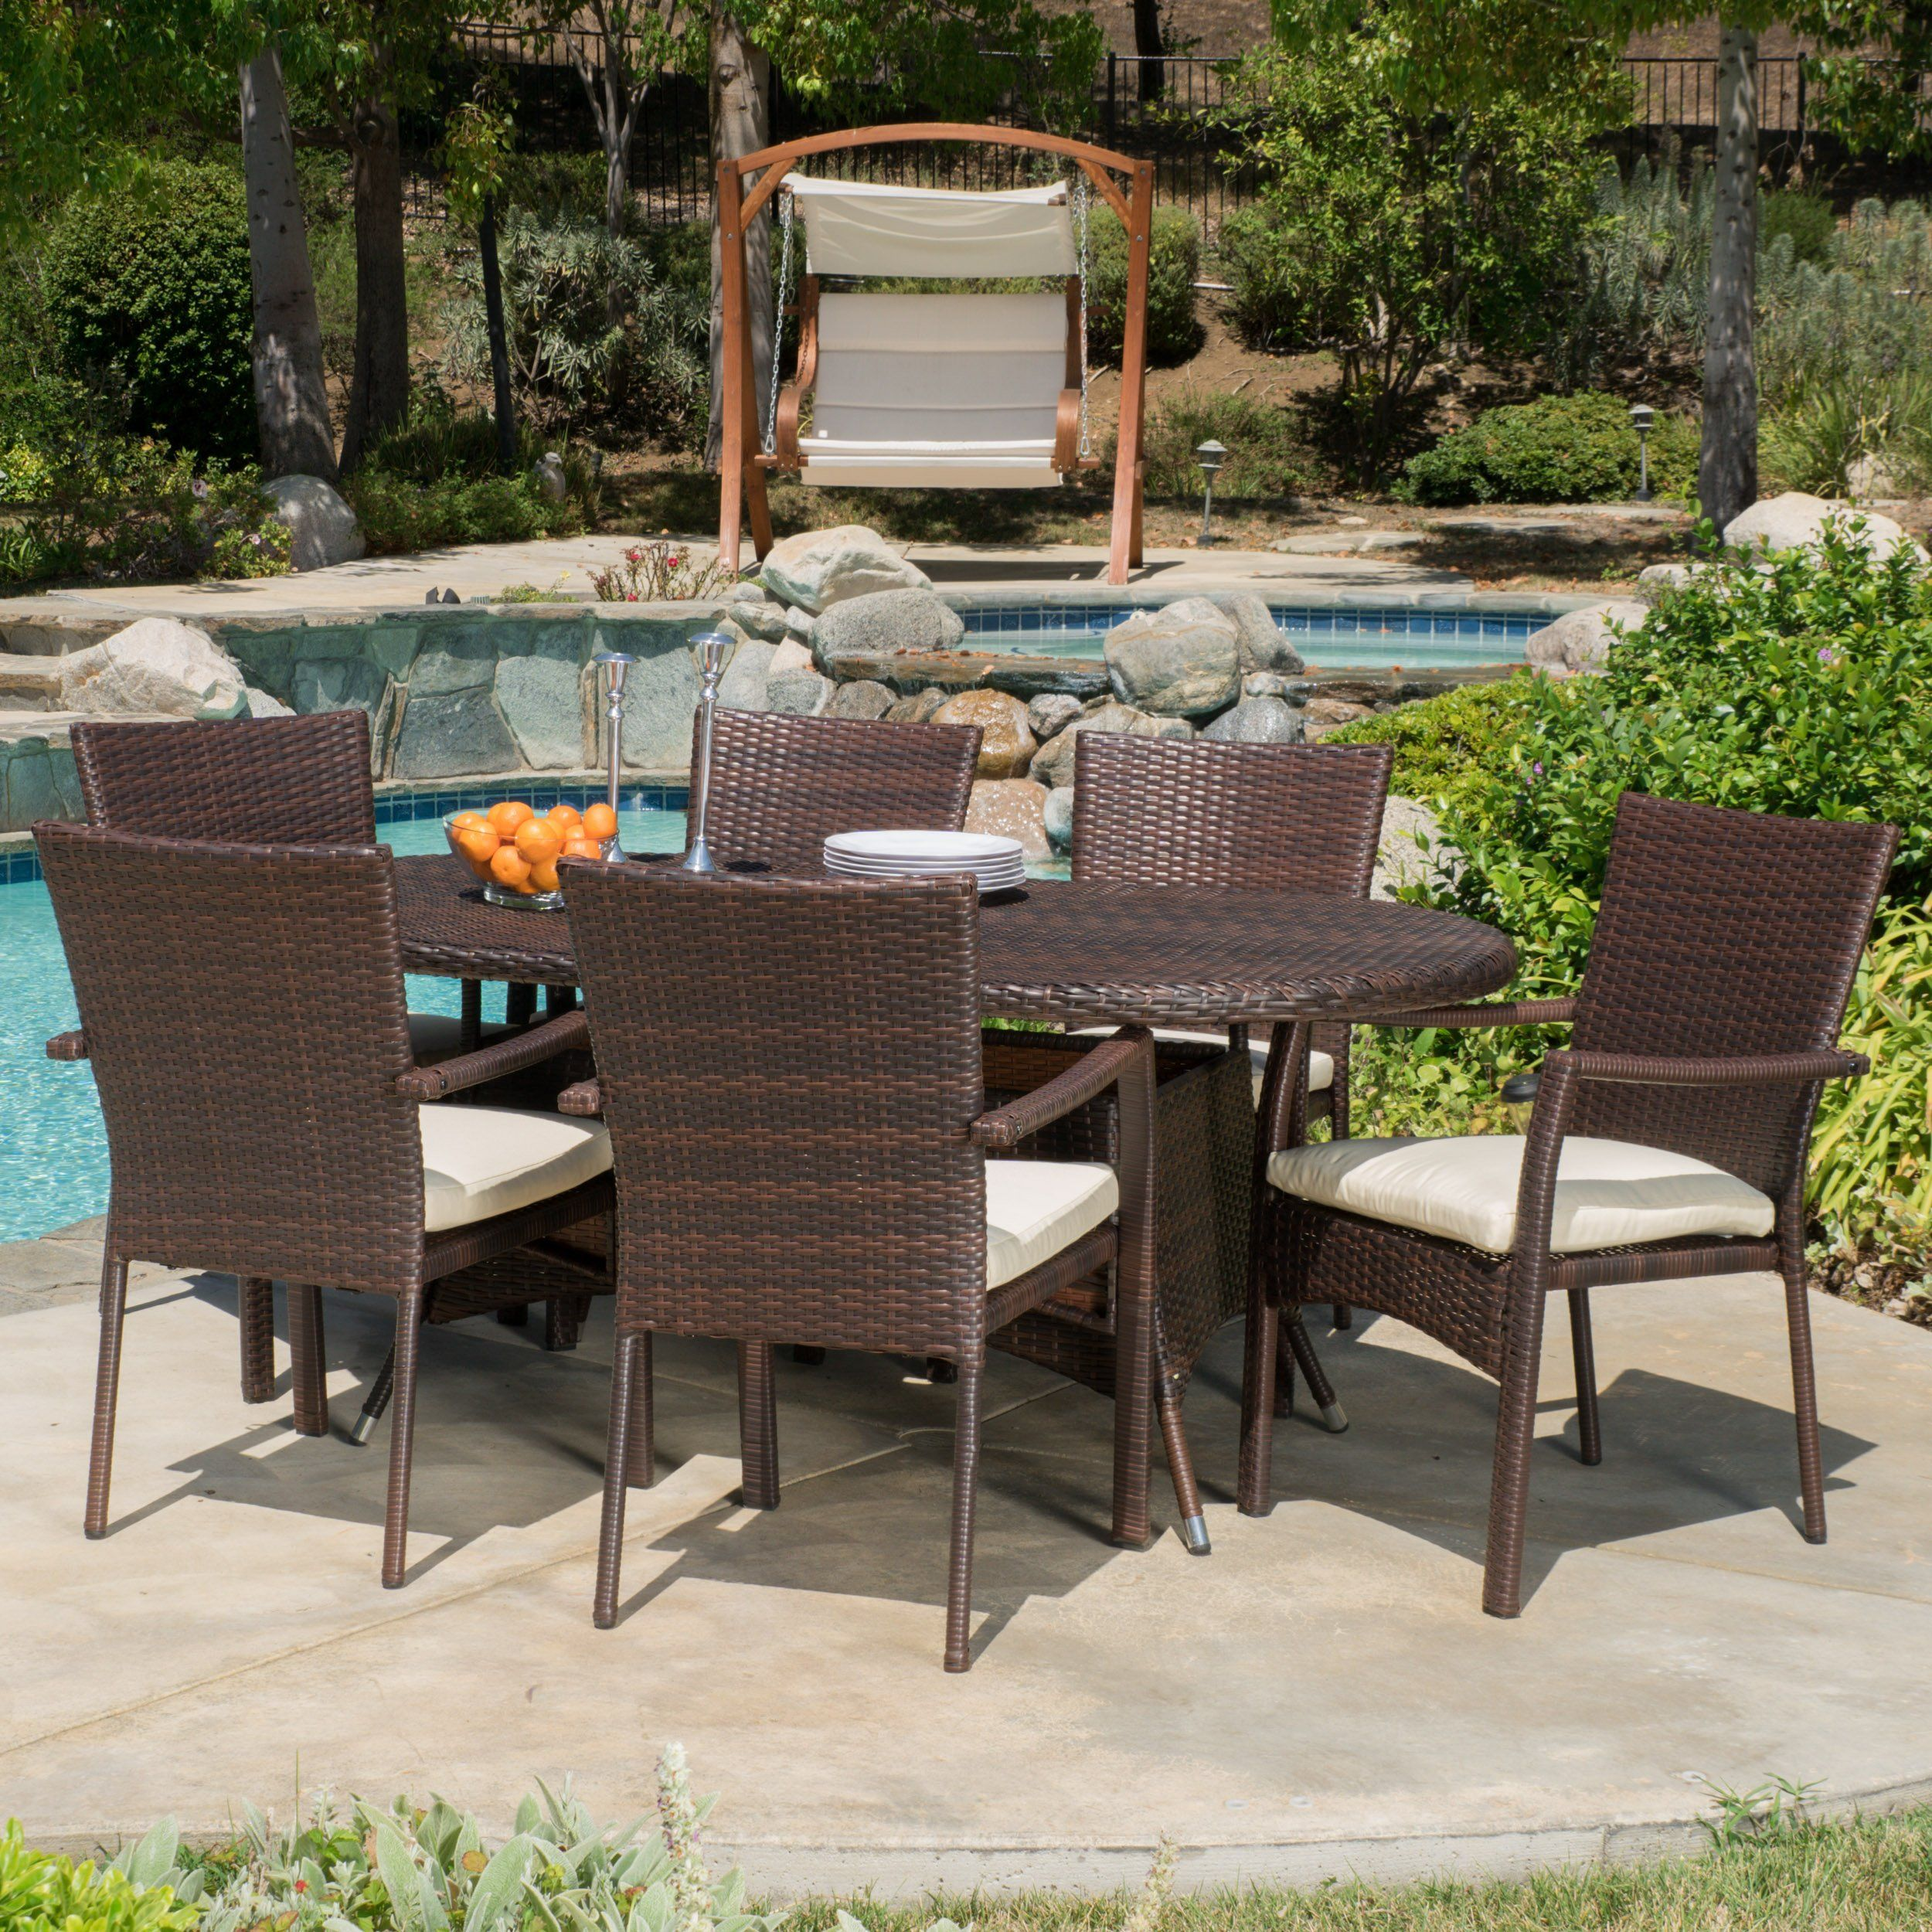 Lancaster outdoor piece wicker dining set with cushions chair